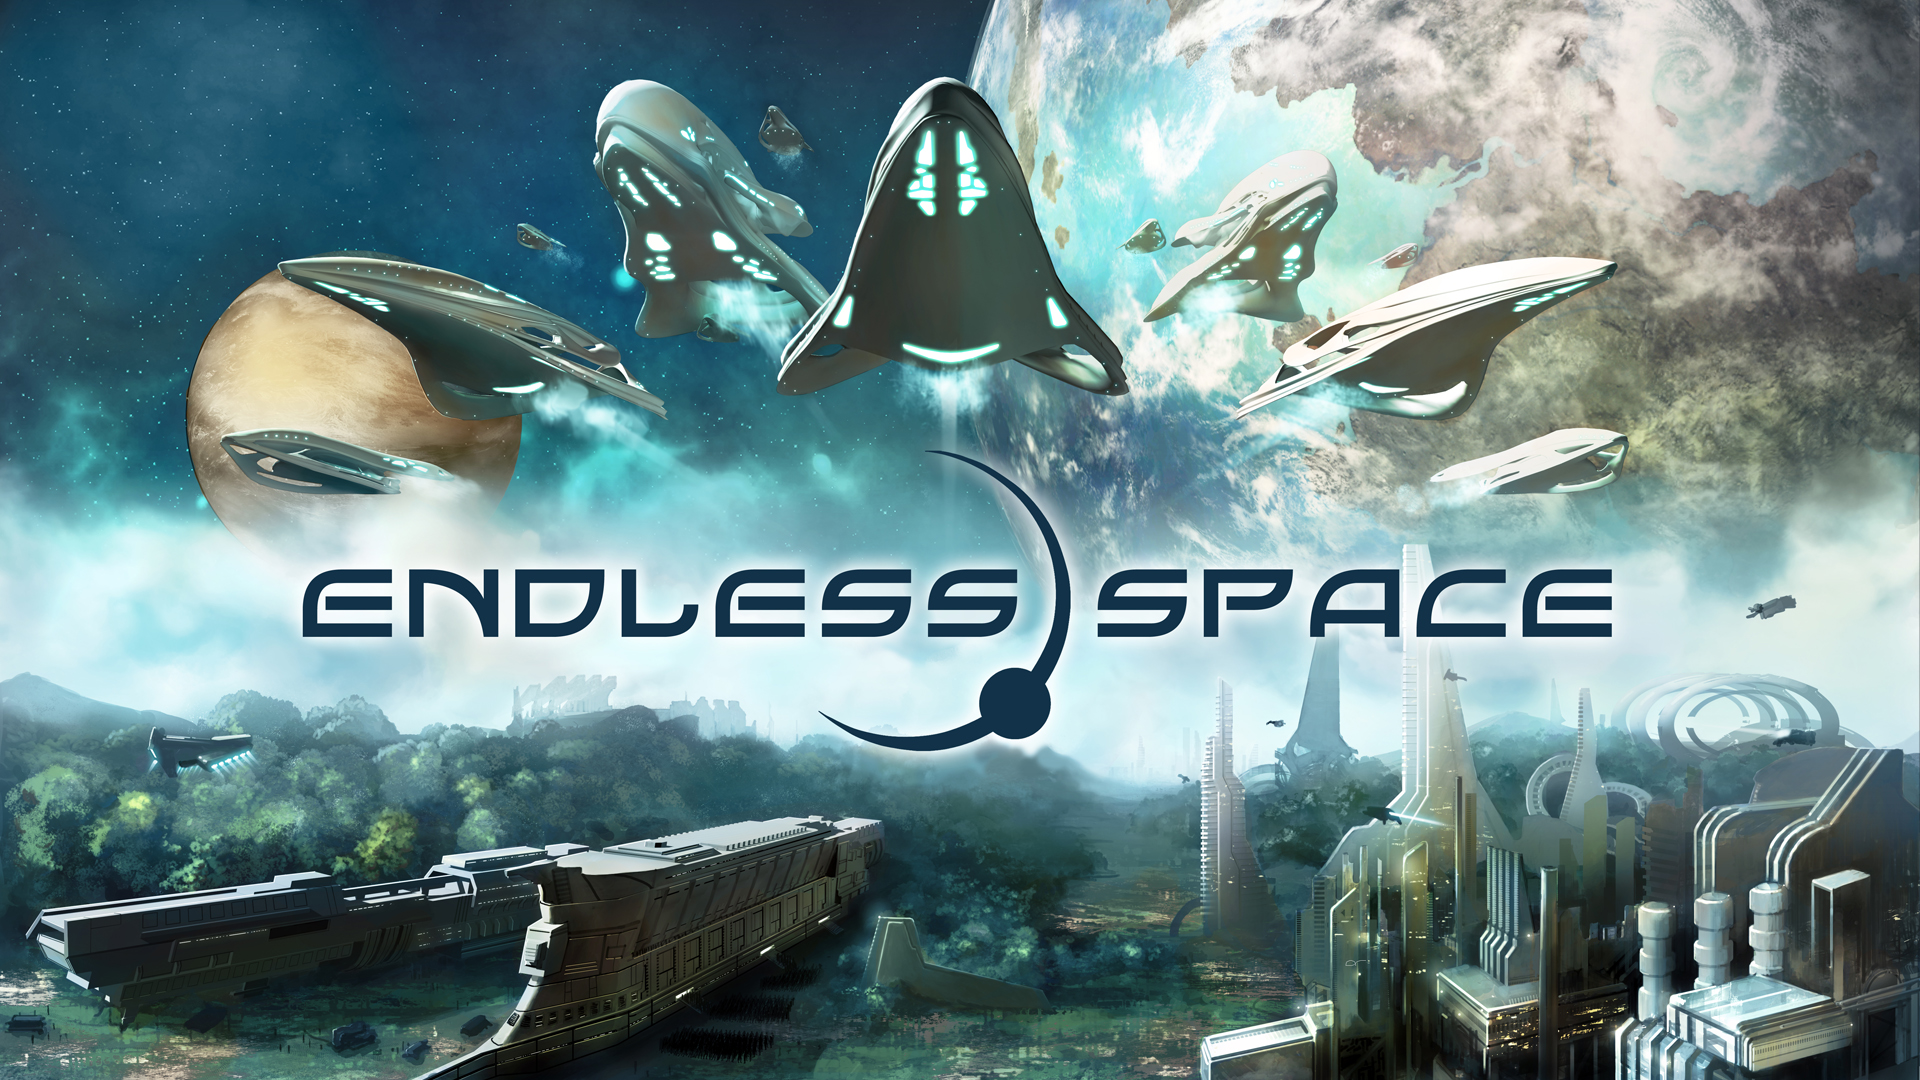 Endless Space Free Download